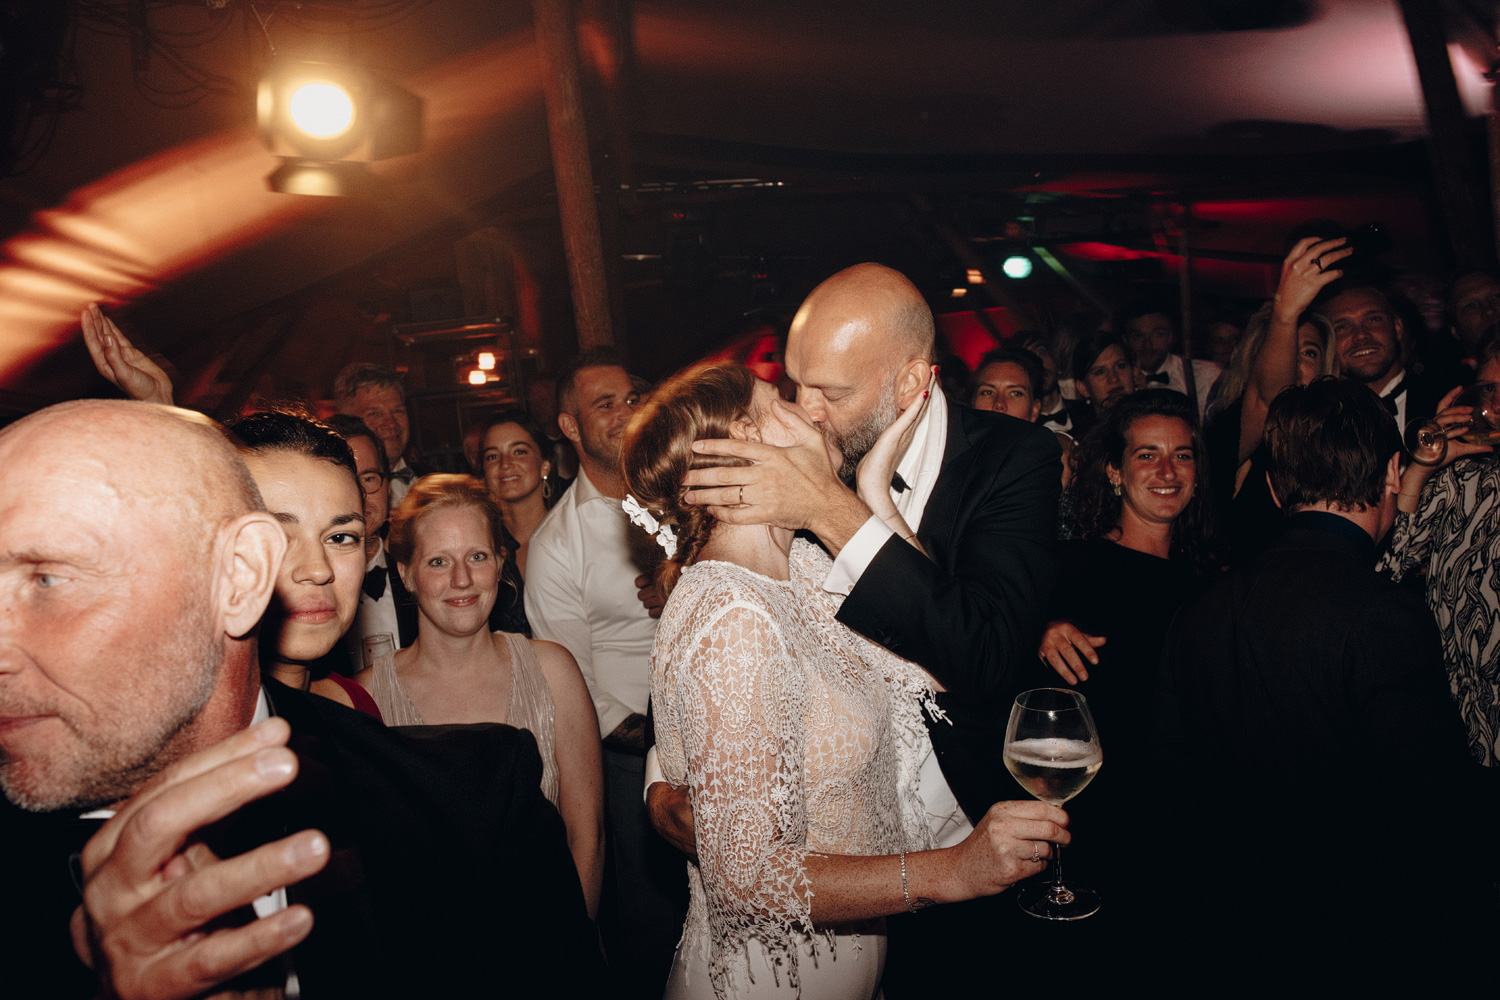 Bride and groom kissing on the dancefloor shot with flash